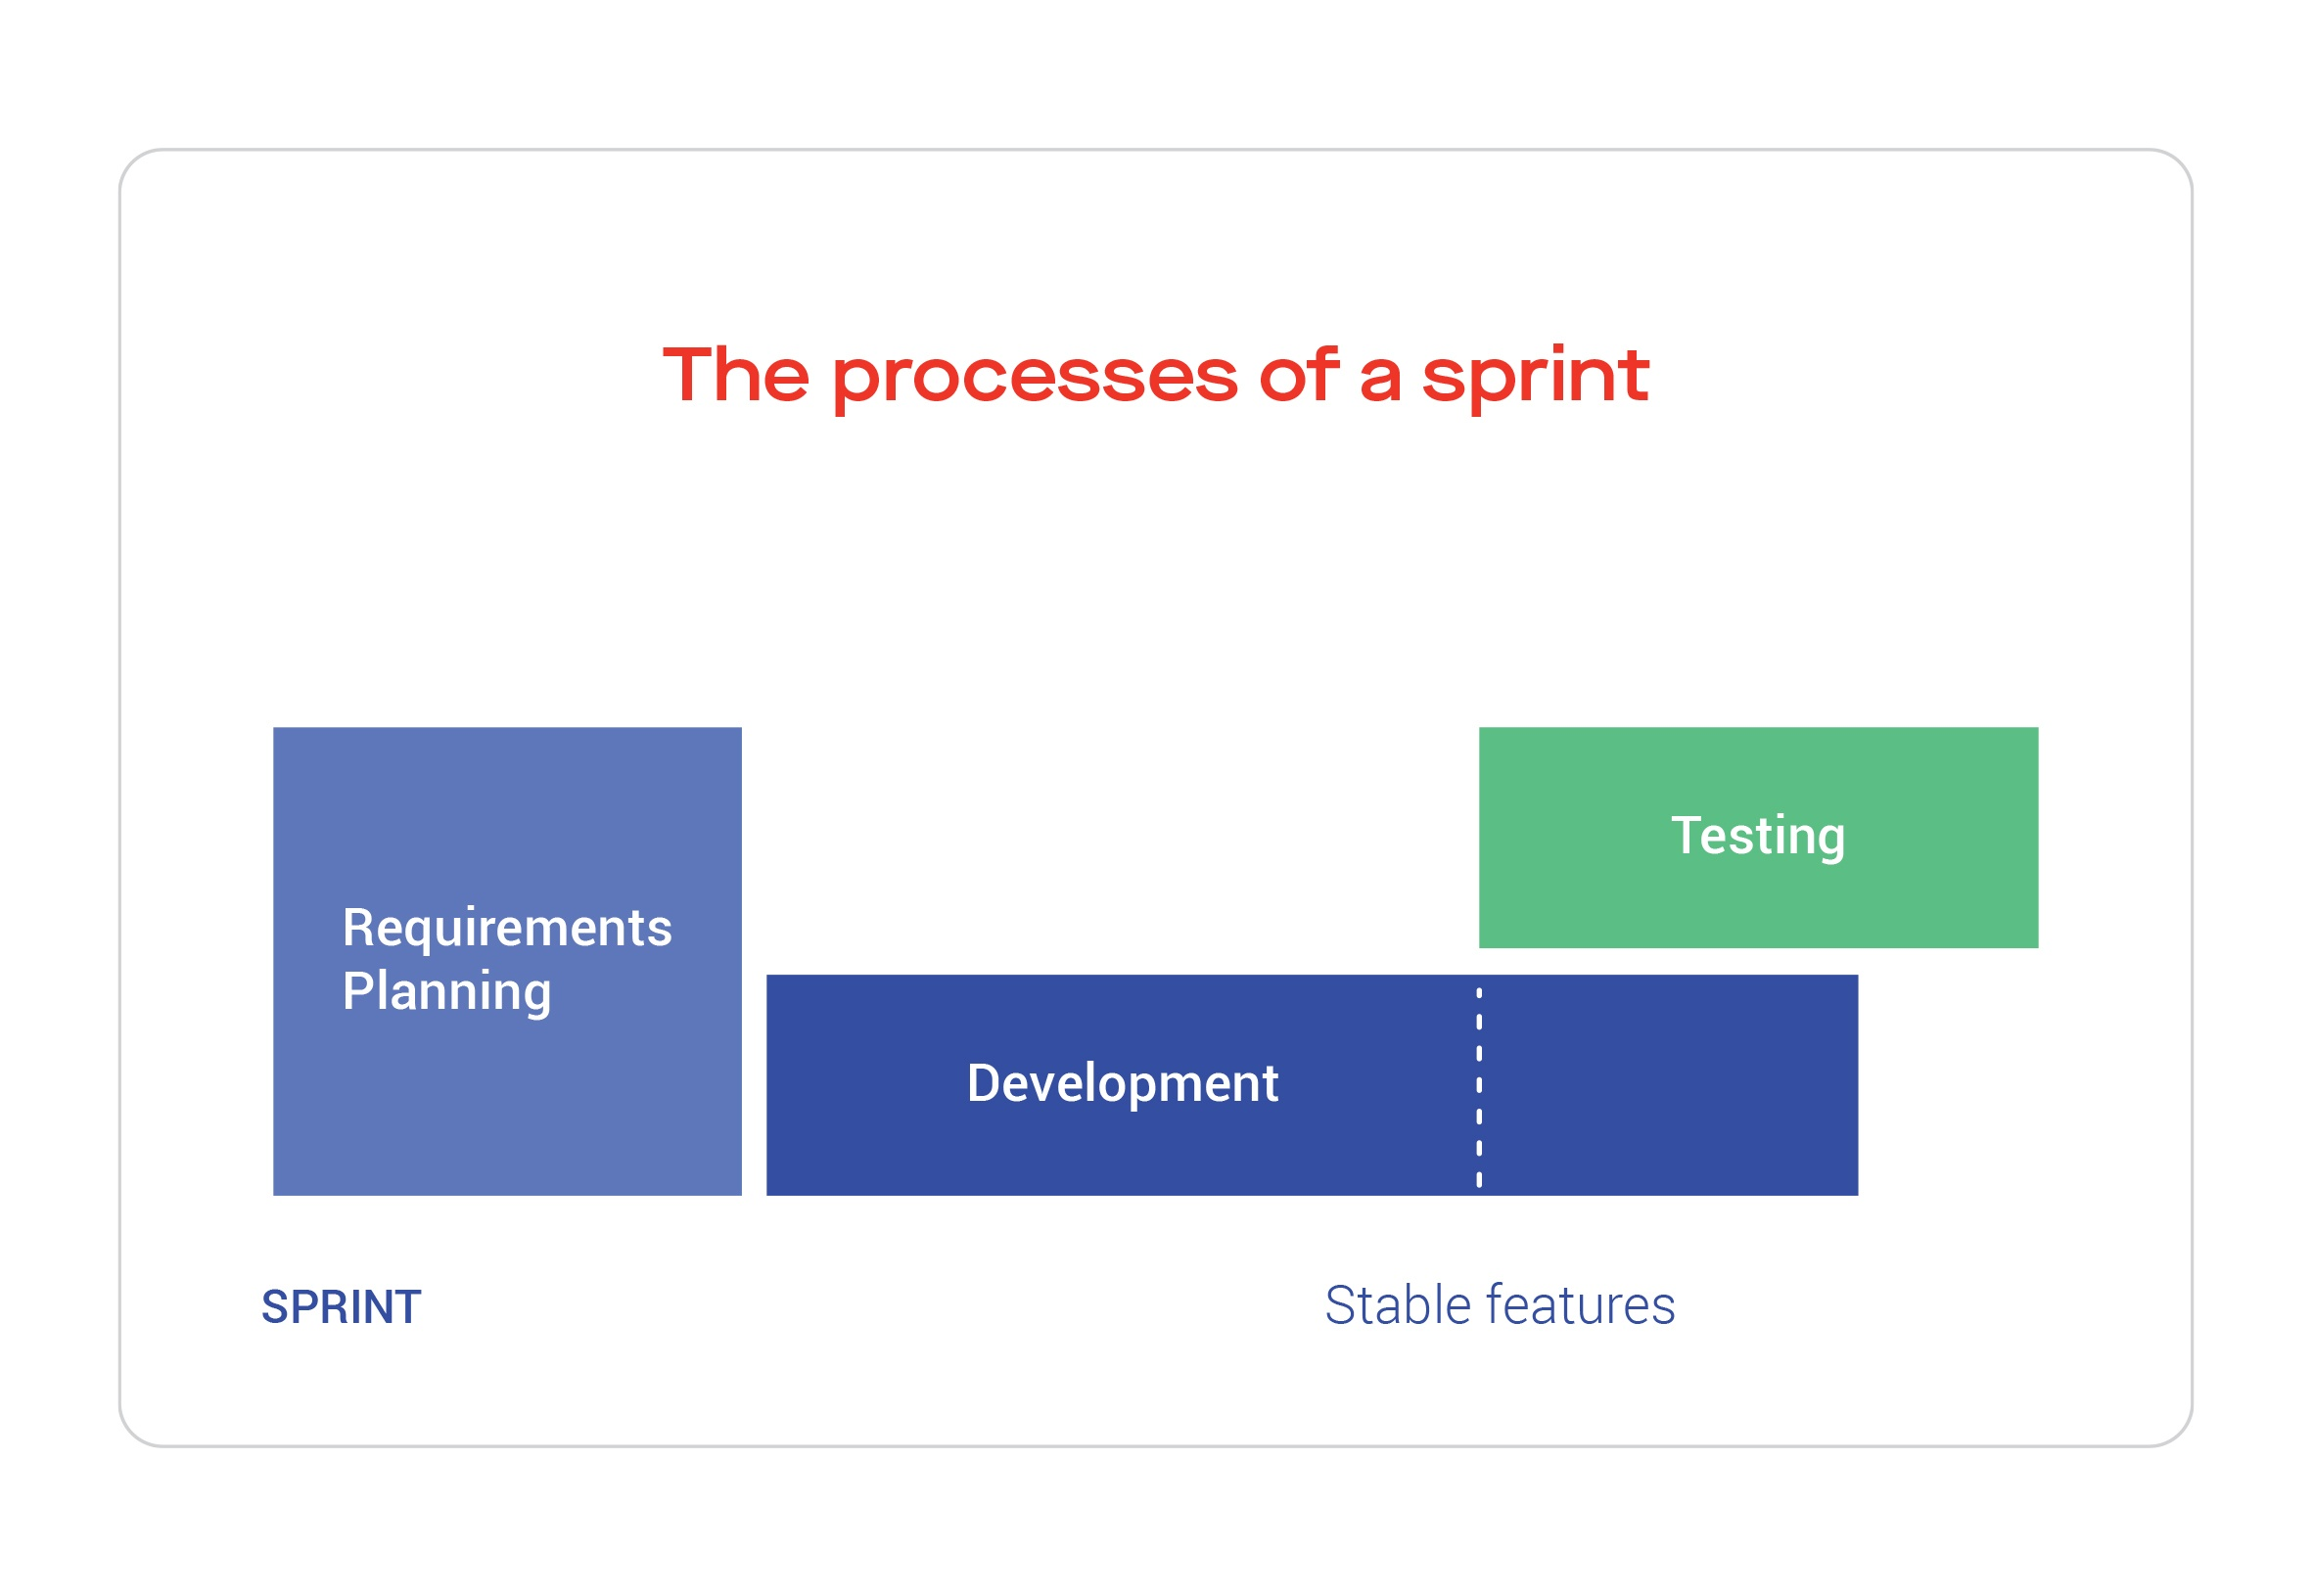 The processes of a sprint